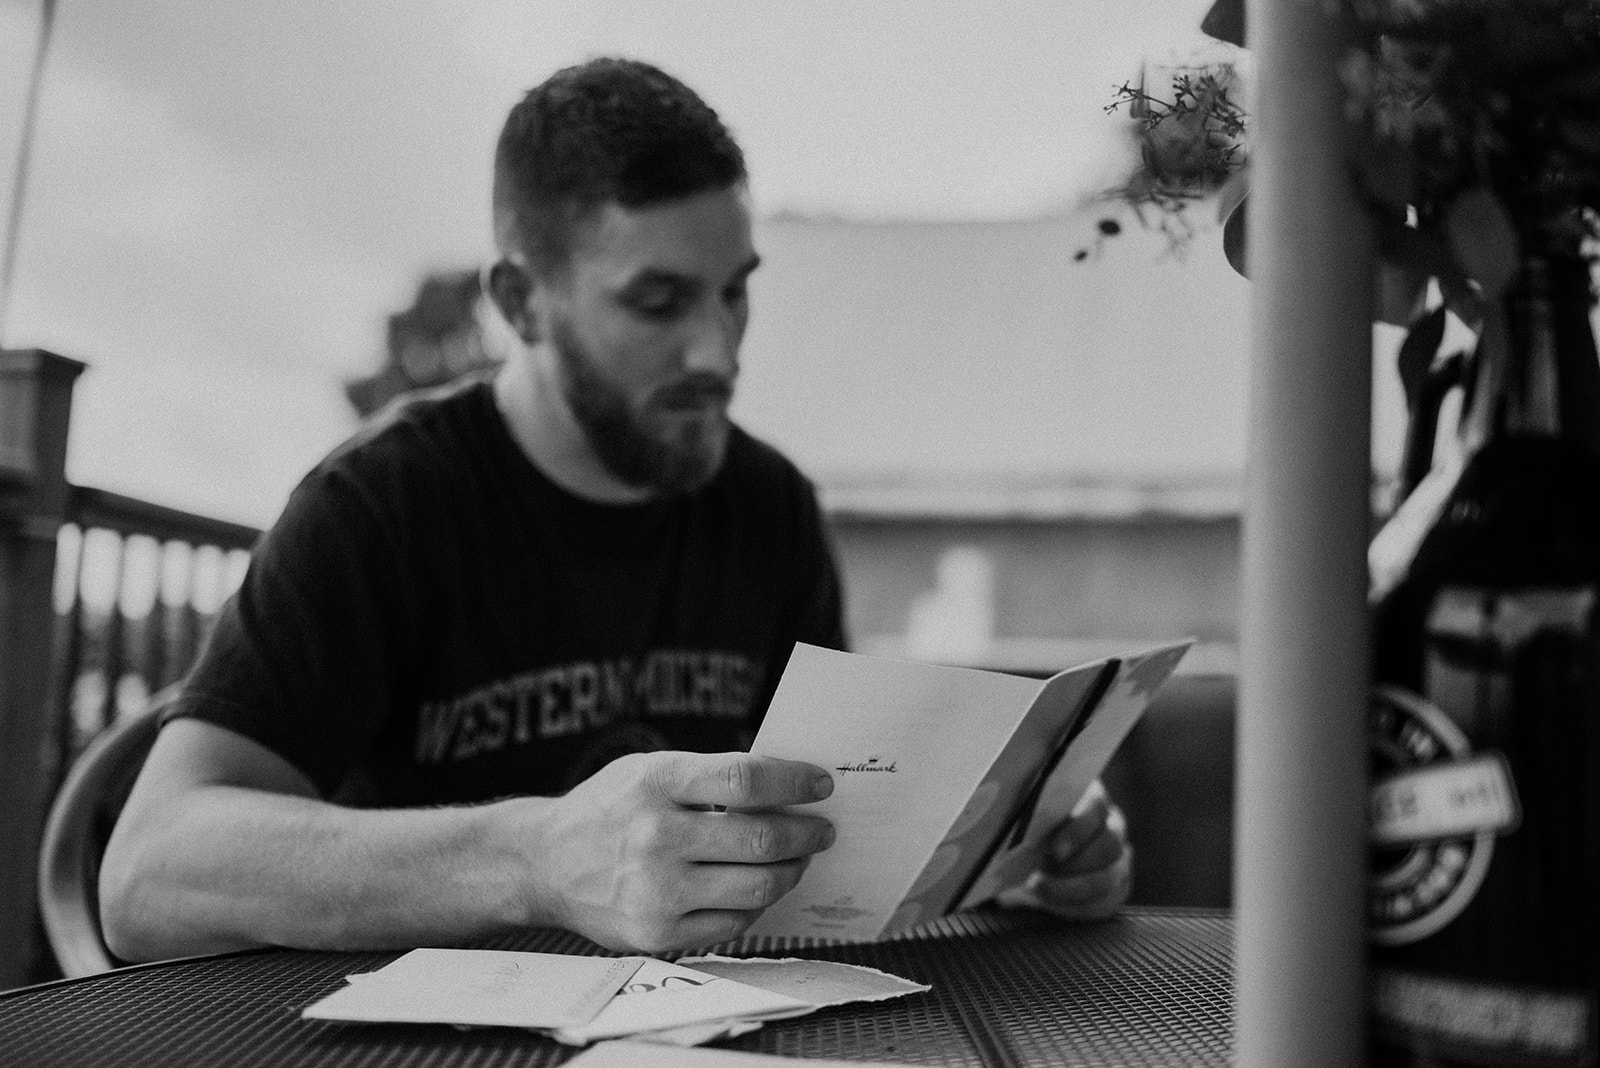 overthevineswisconsinwedding_0237.jpg